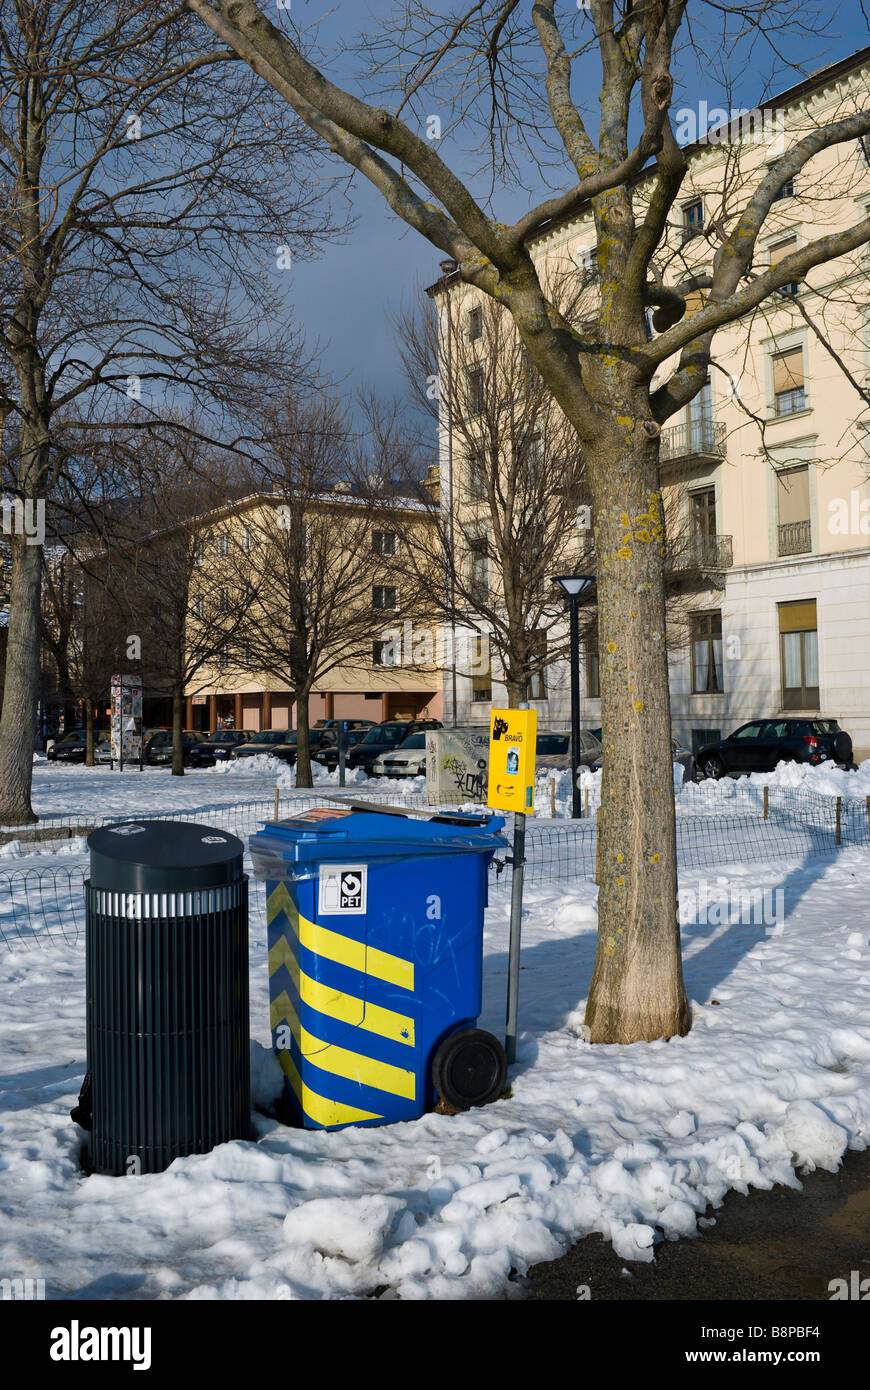 A recycling bin sits next to a city trash can surrounded by snow; Neuchatel Switzerland - Stock Image